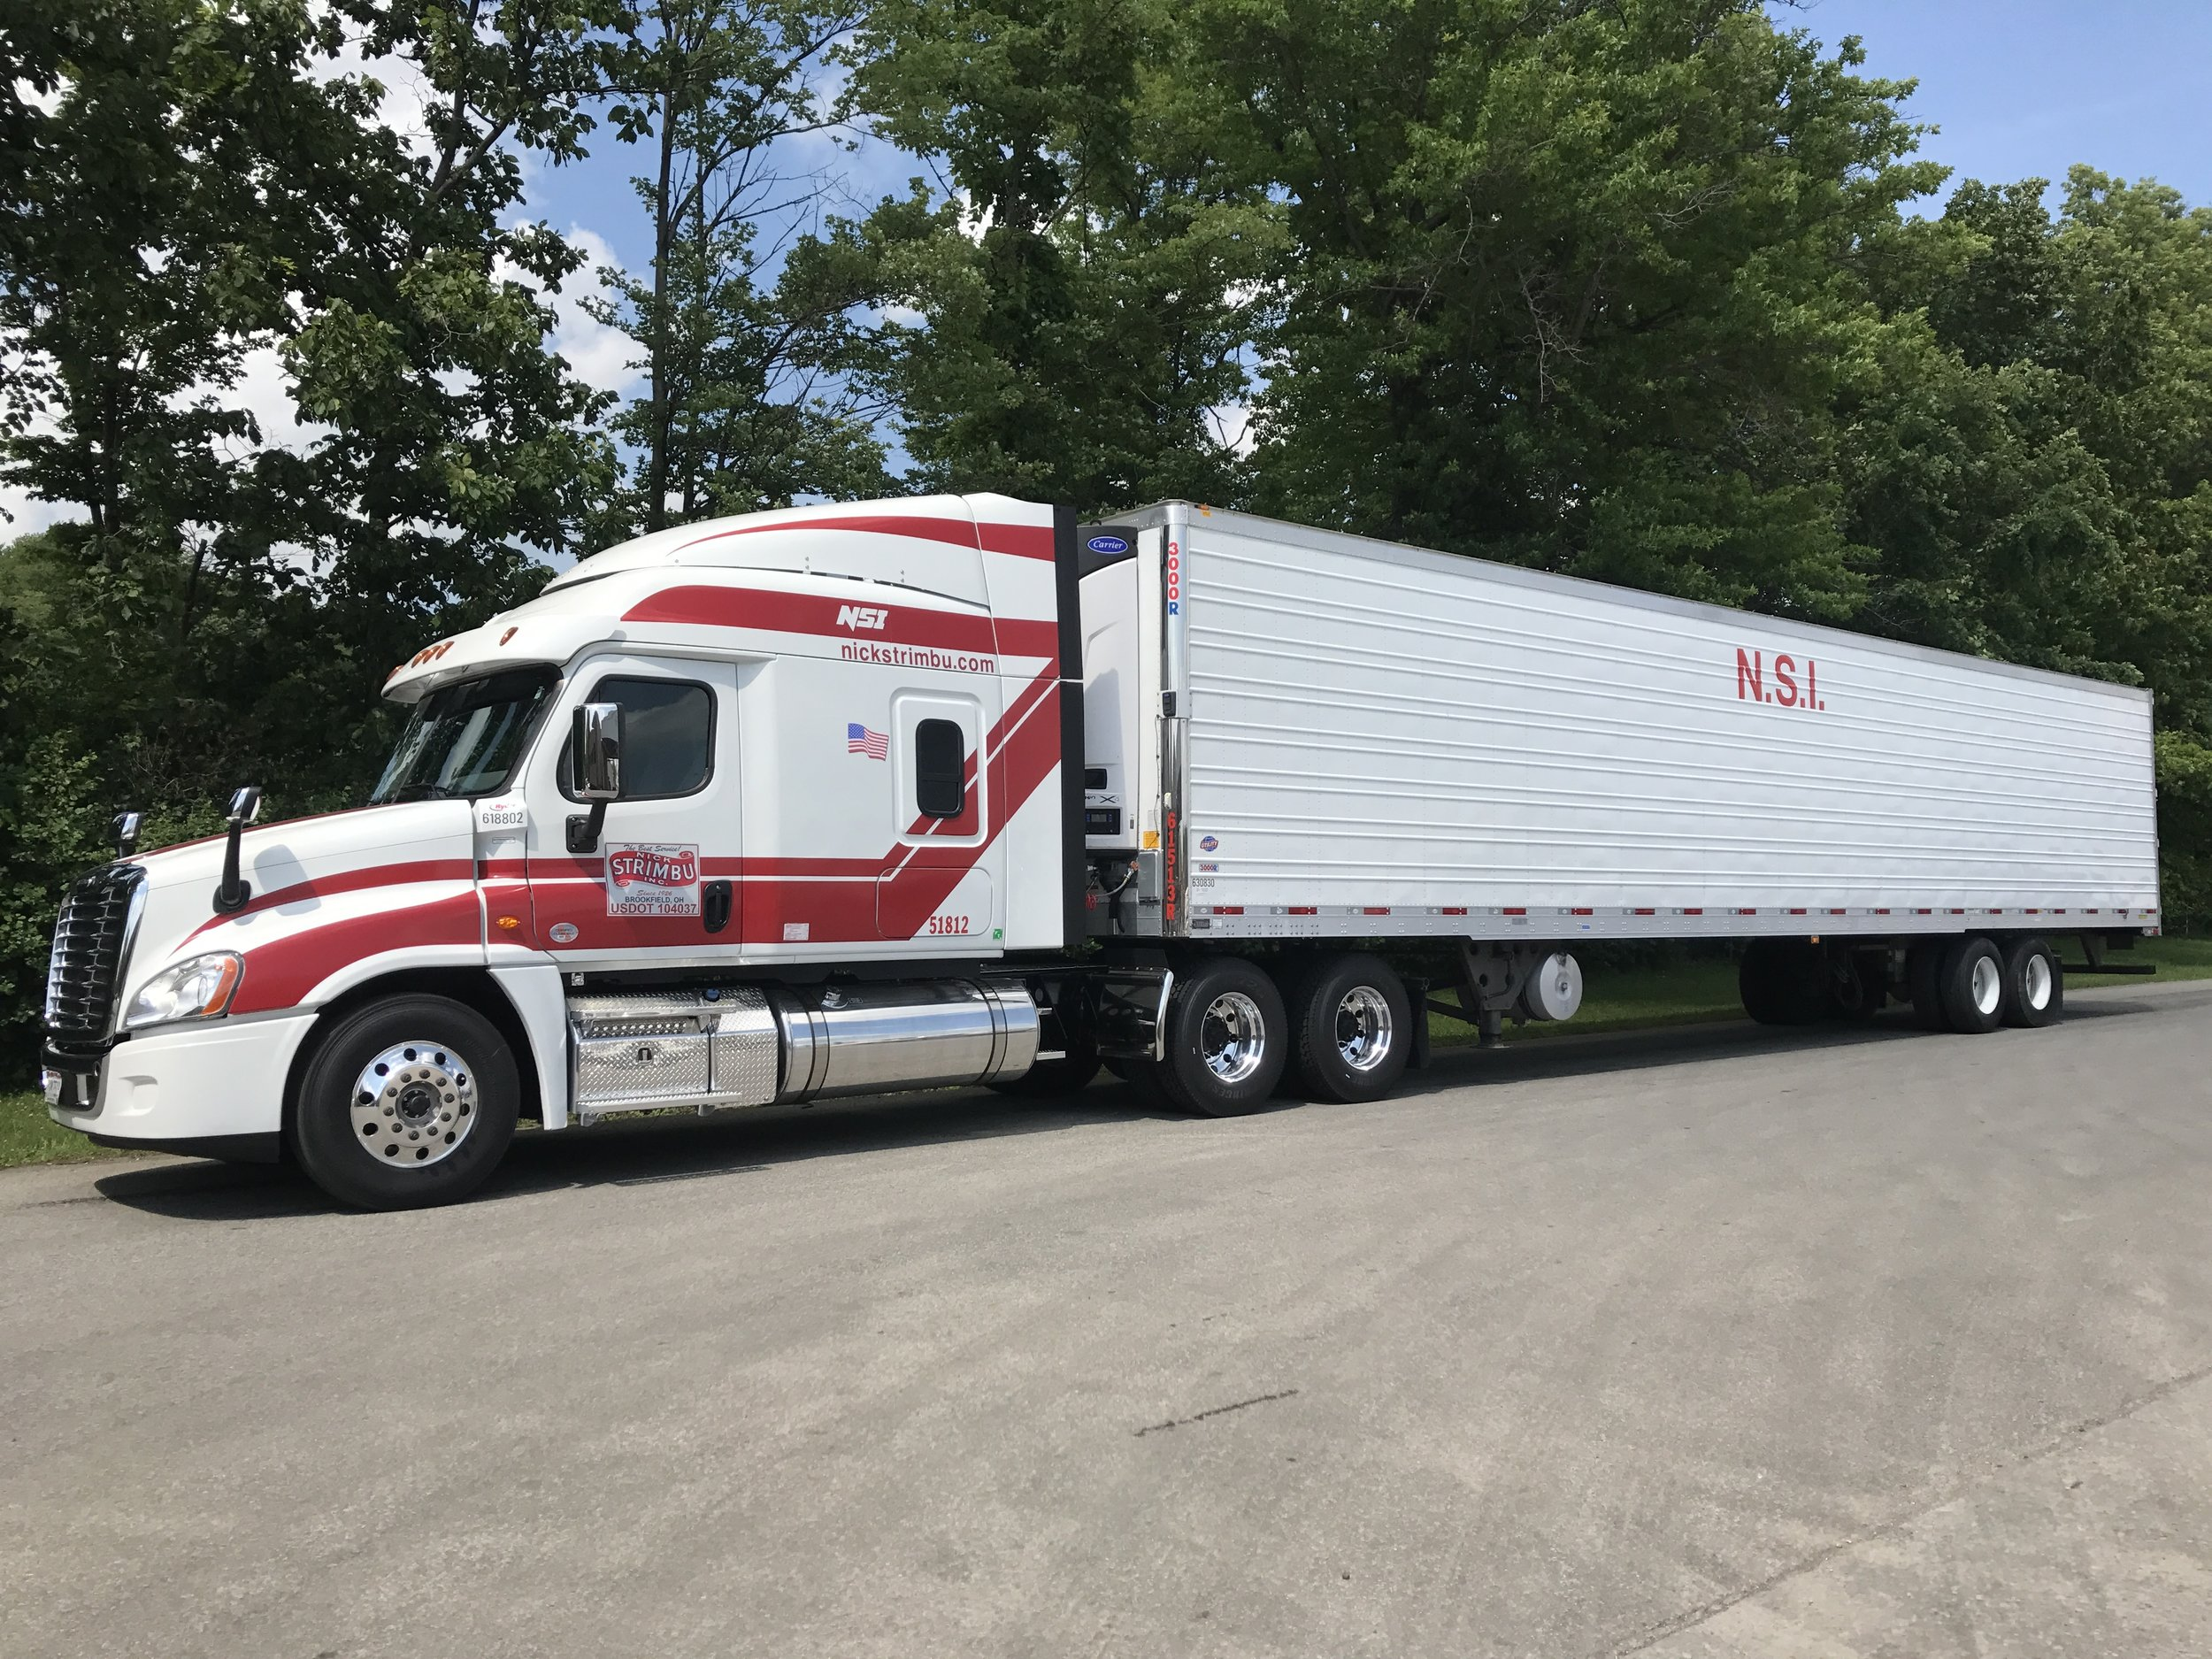 Reliability - Our fleet is expertly maintained and equipped with the most advanced technology. Our drivers are highly skilled, experienced, motivated and guided by a knowledgeable support staff. We have proximity to the nation's most important transportation arteries, which enables us to reach a large percentage of major markets daily.